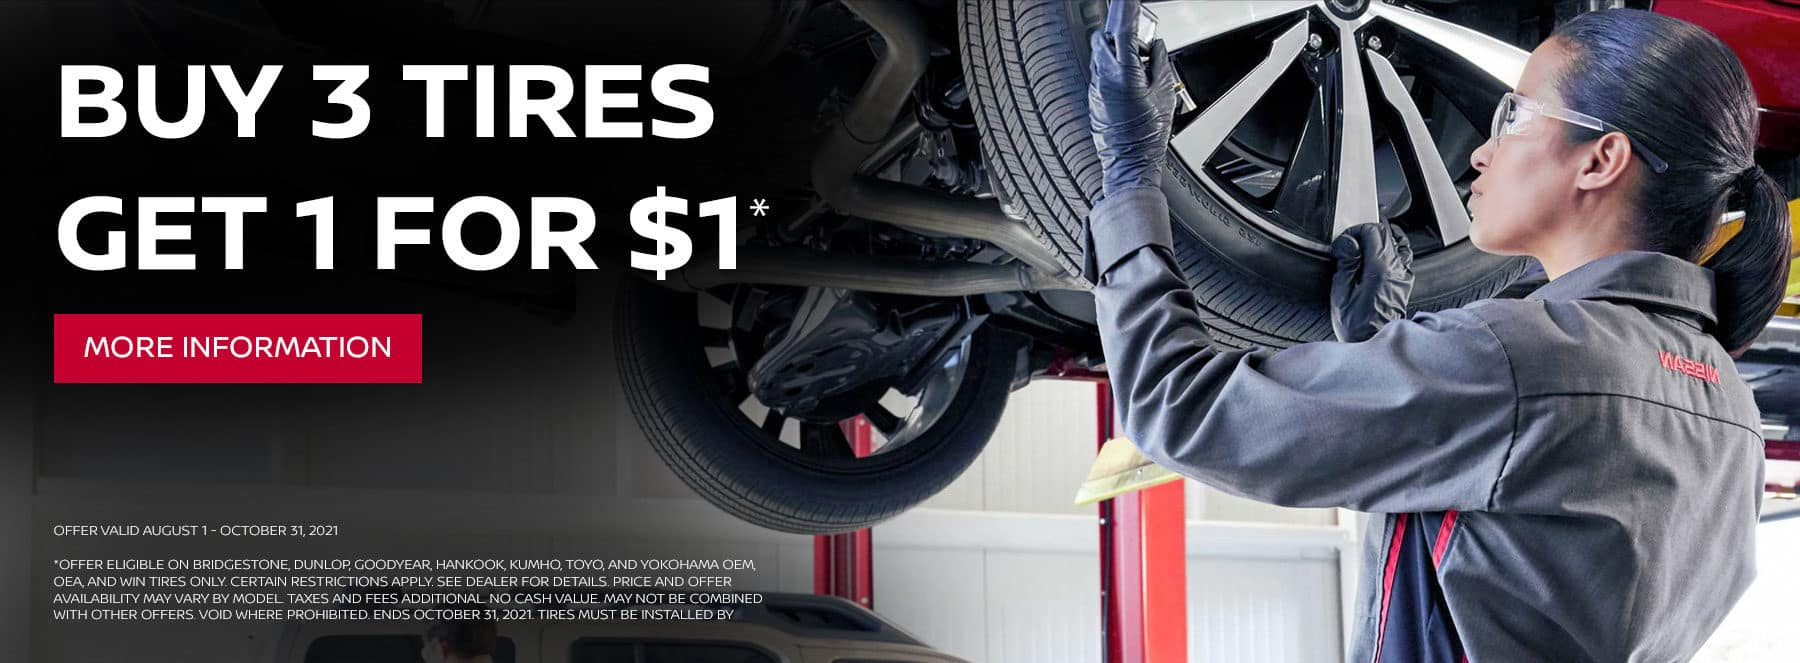 Buy 3 Tires Get 1 For $1. Call today to schedule an appointment.